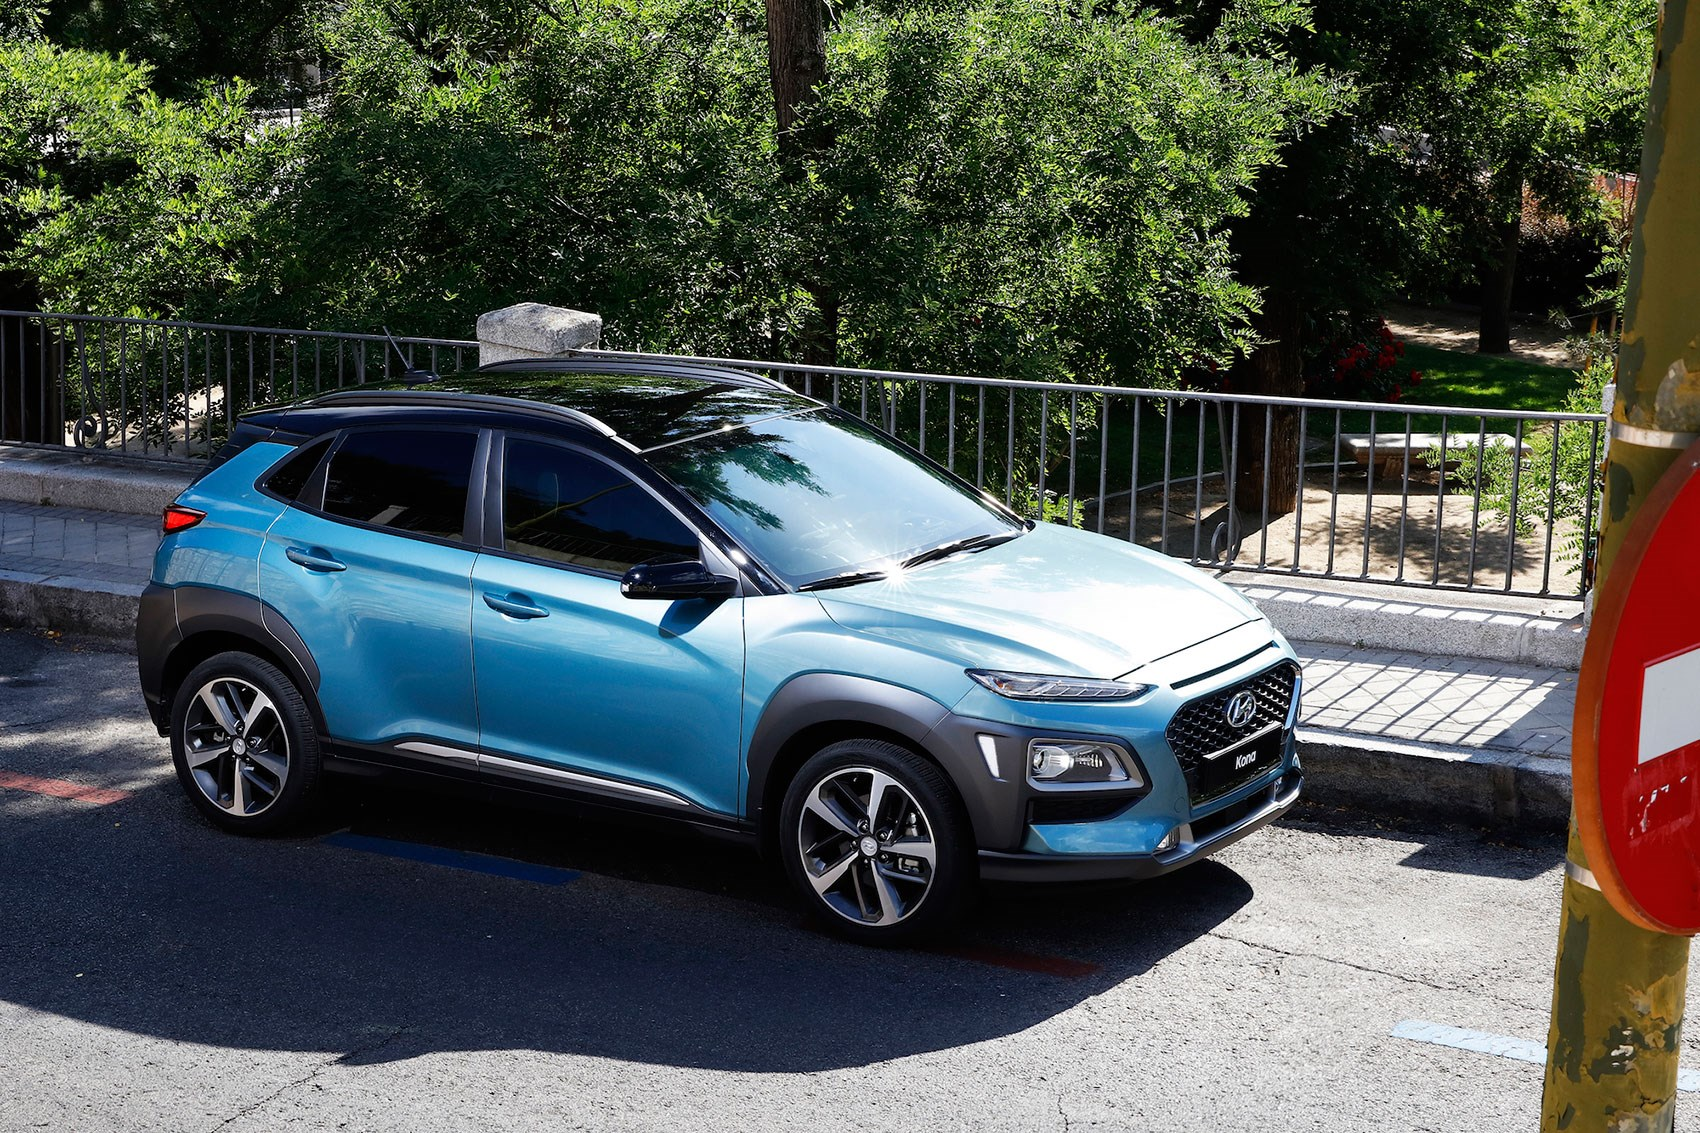 Small Volvo Suv >> New Hyundai Kona SUV: specs, details, photos by CAR Magazine